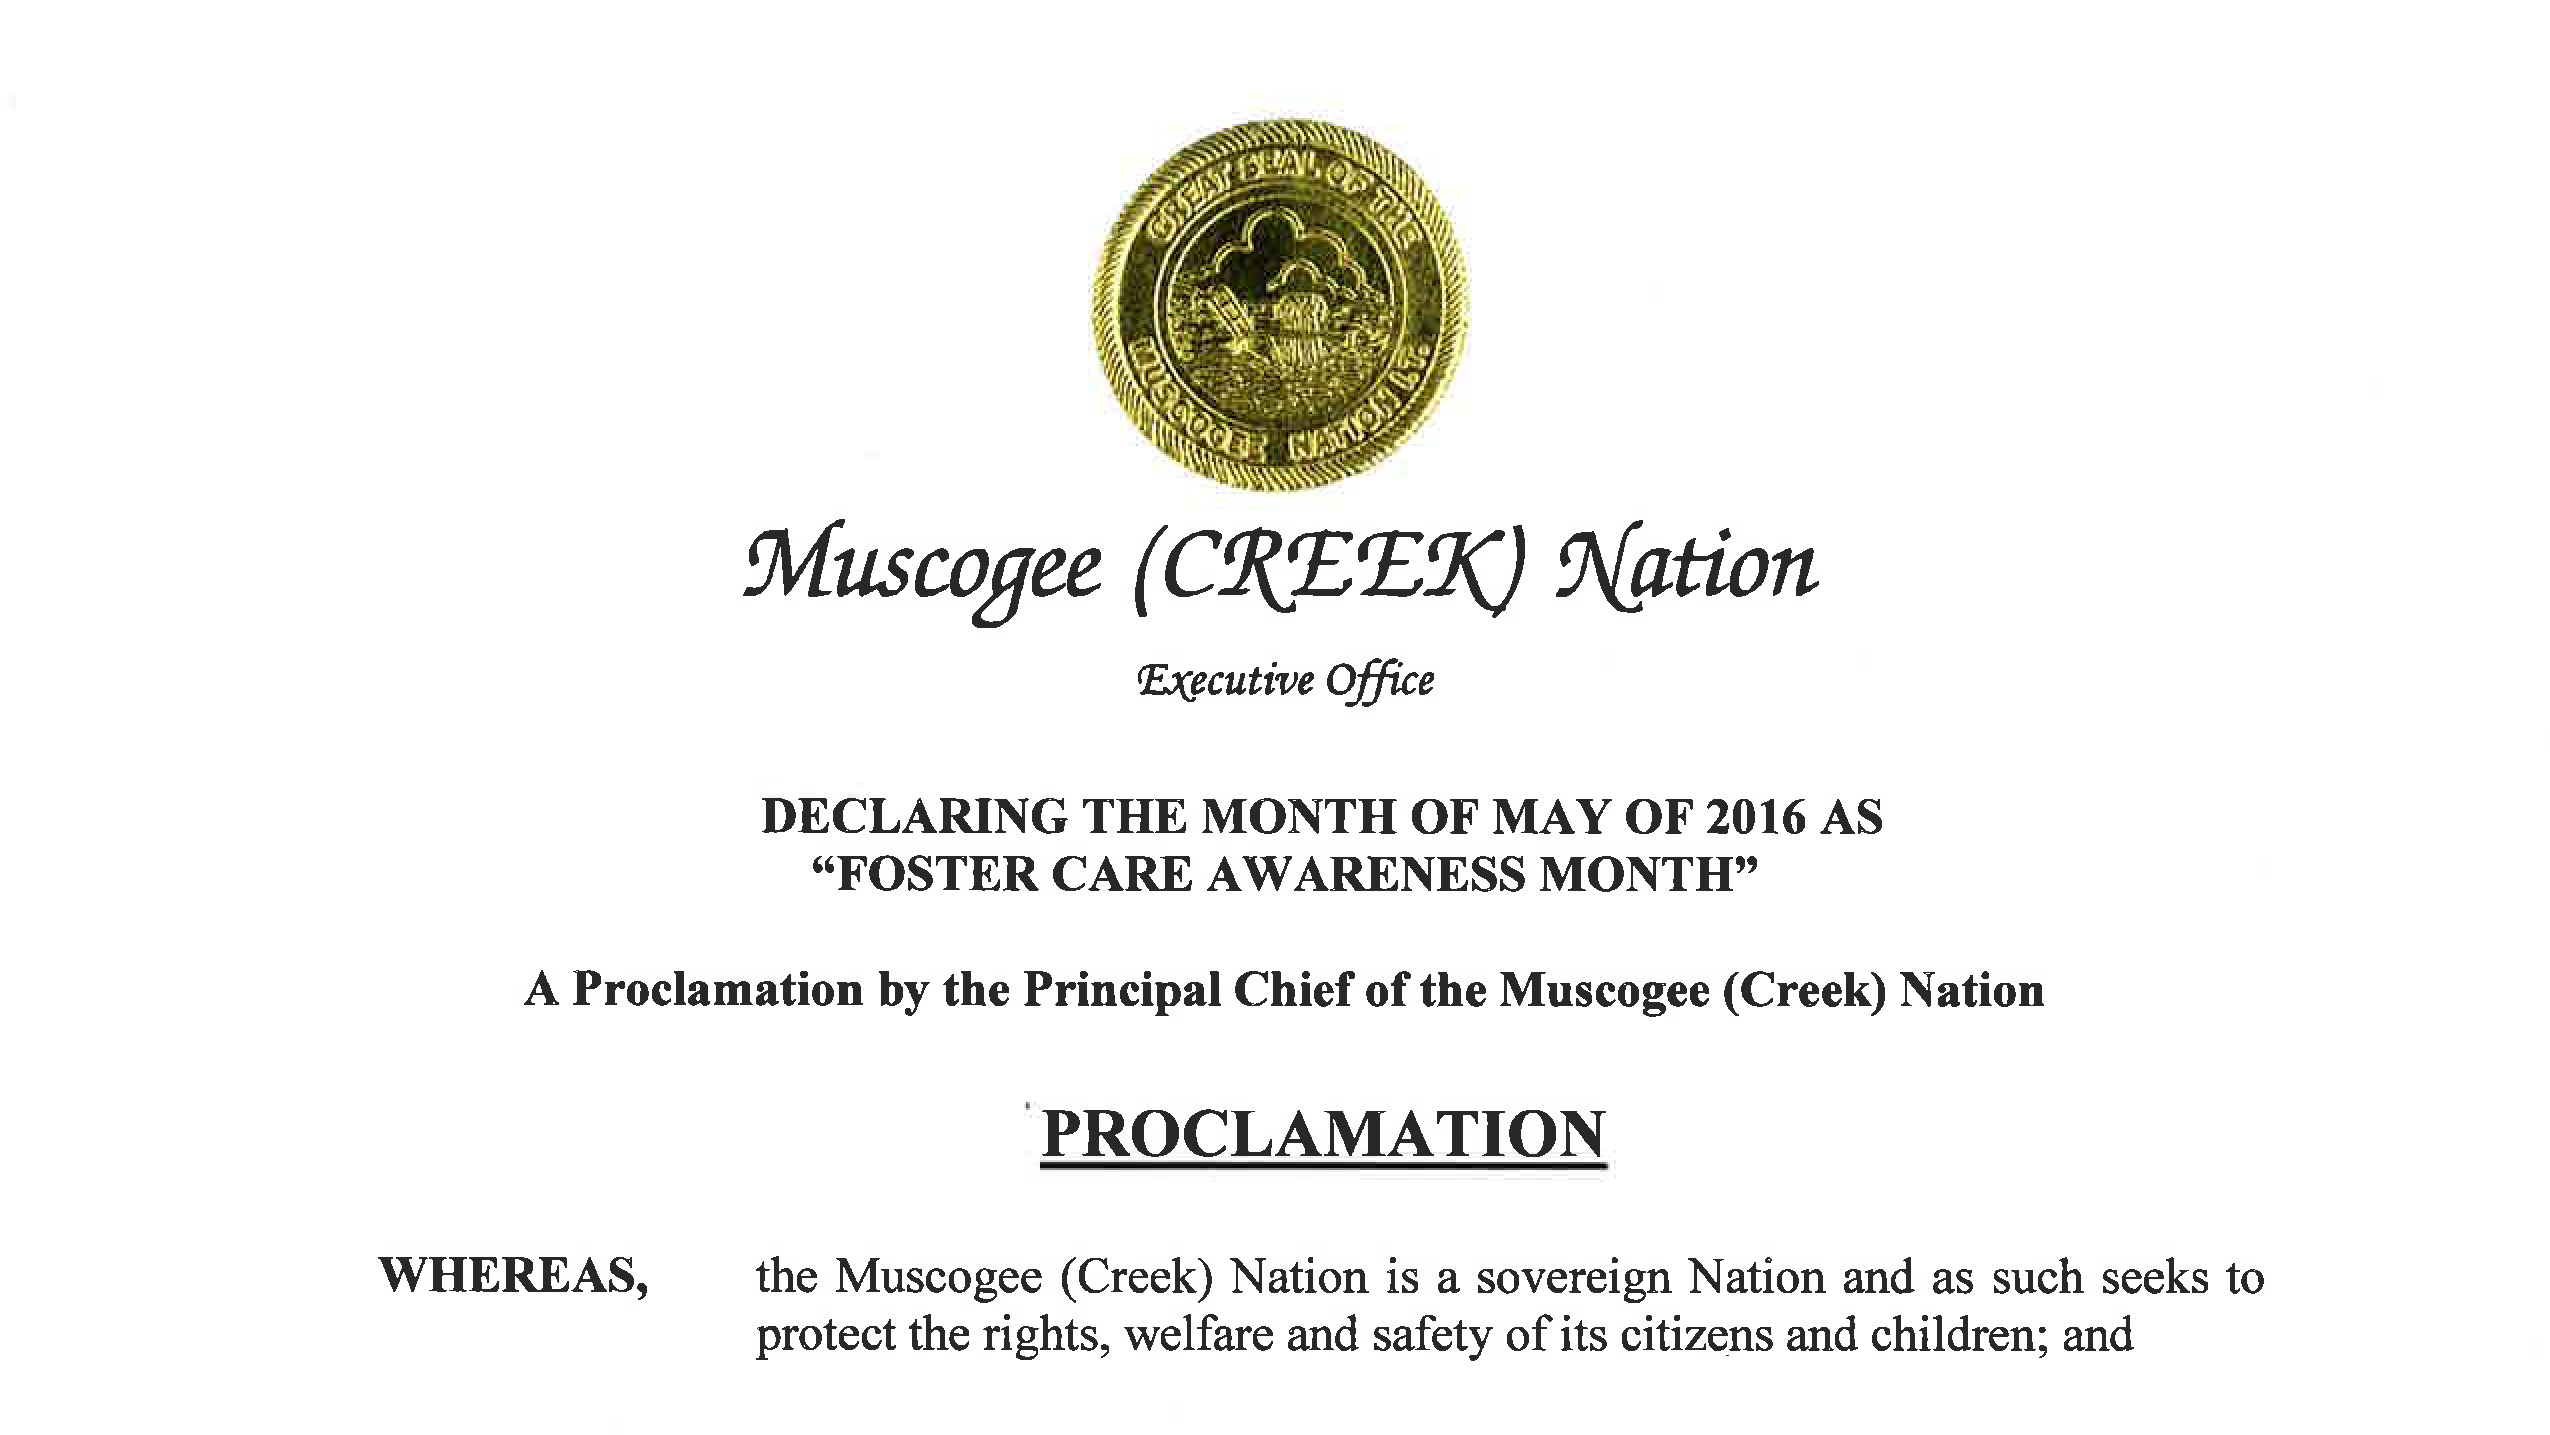 Foster Care Awareness Month Proclamation – Muscogee (Creek